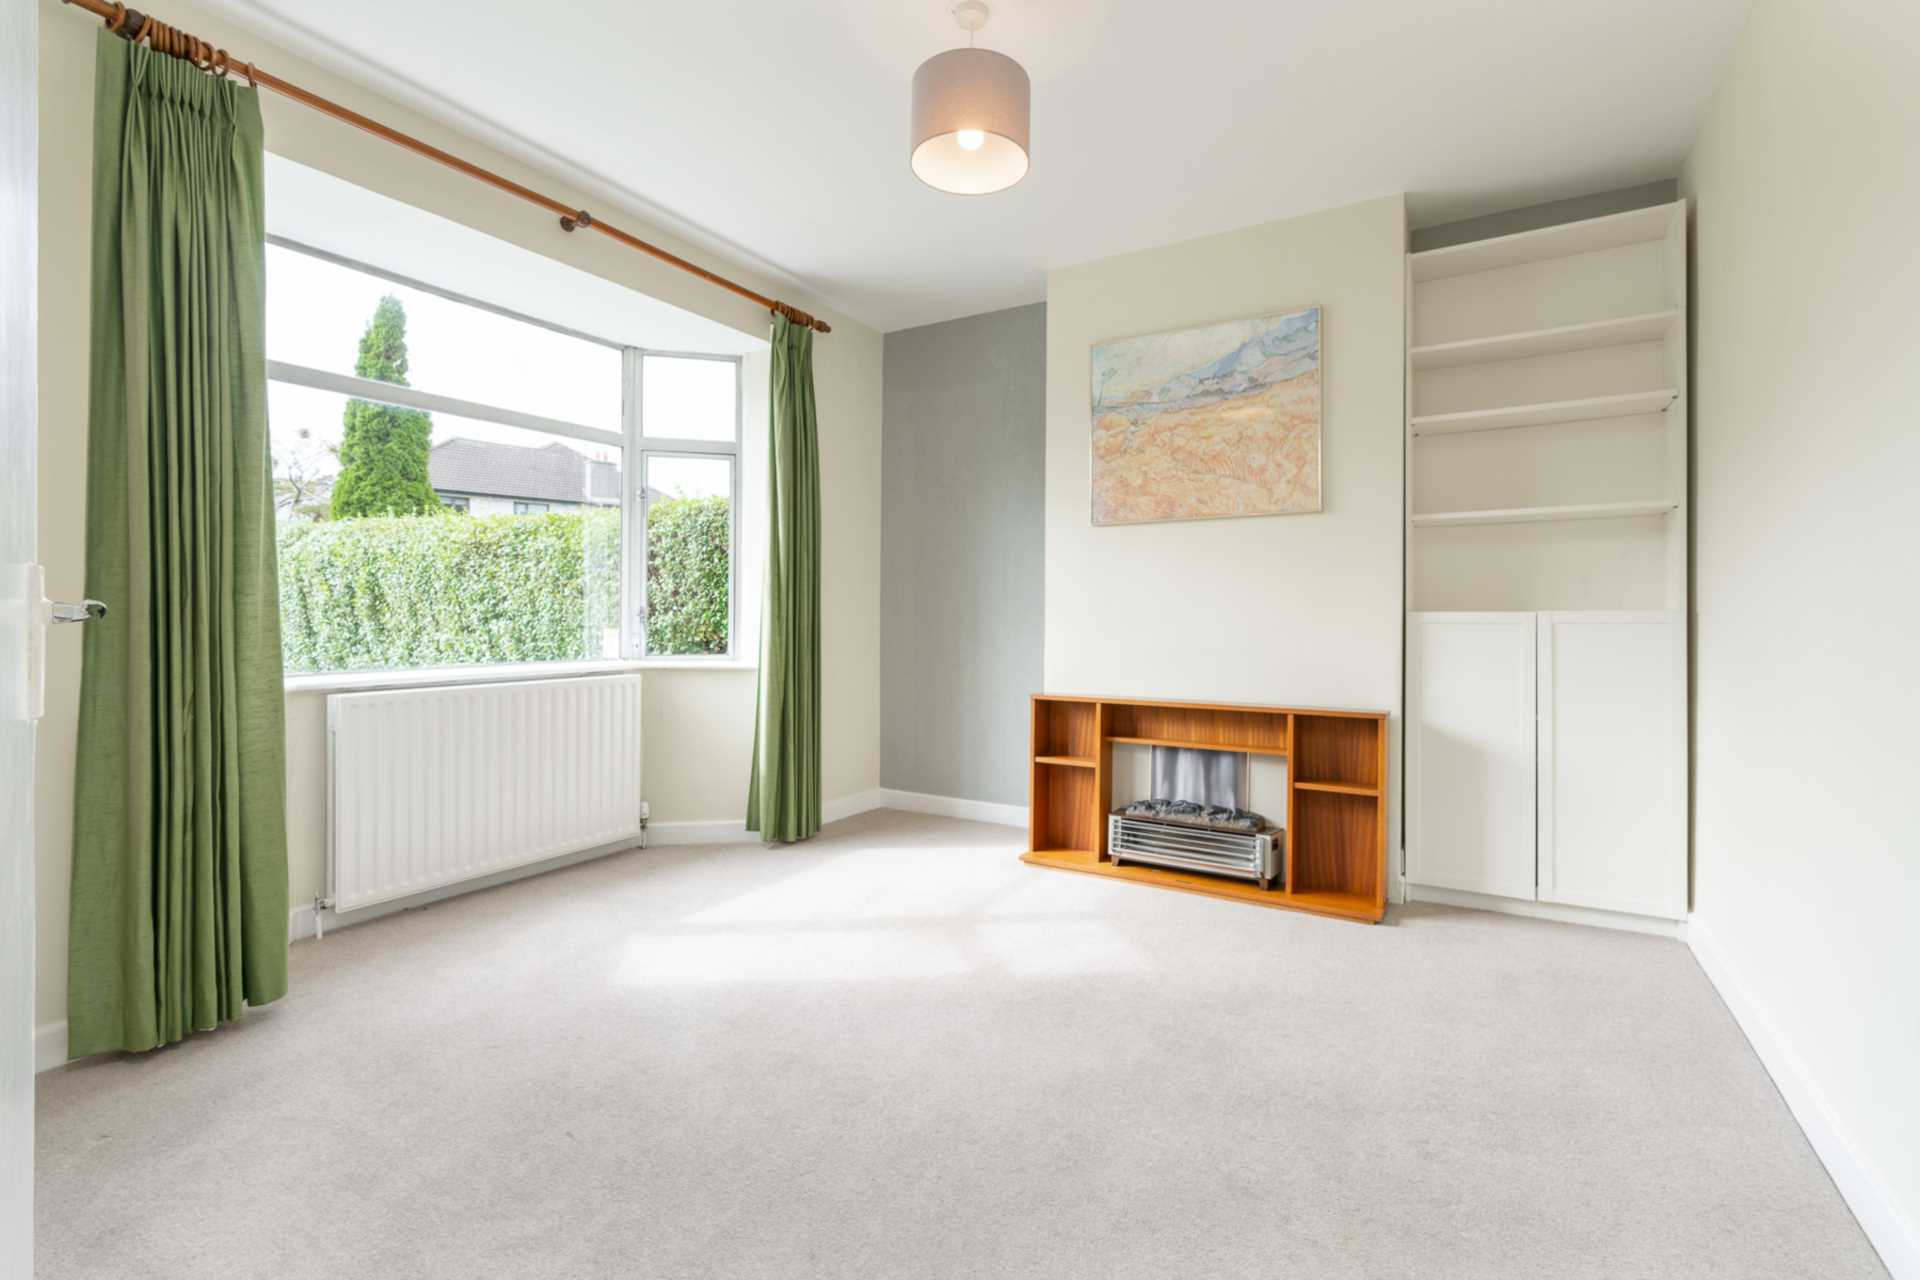 57 Seafield Crescent, Booterstown, Co Dublin, Image 2